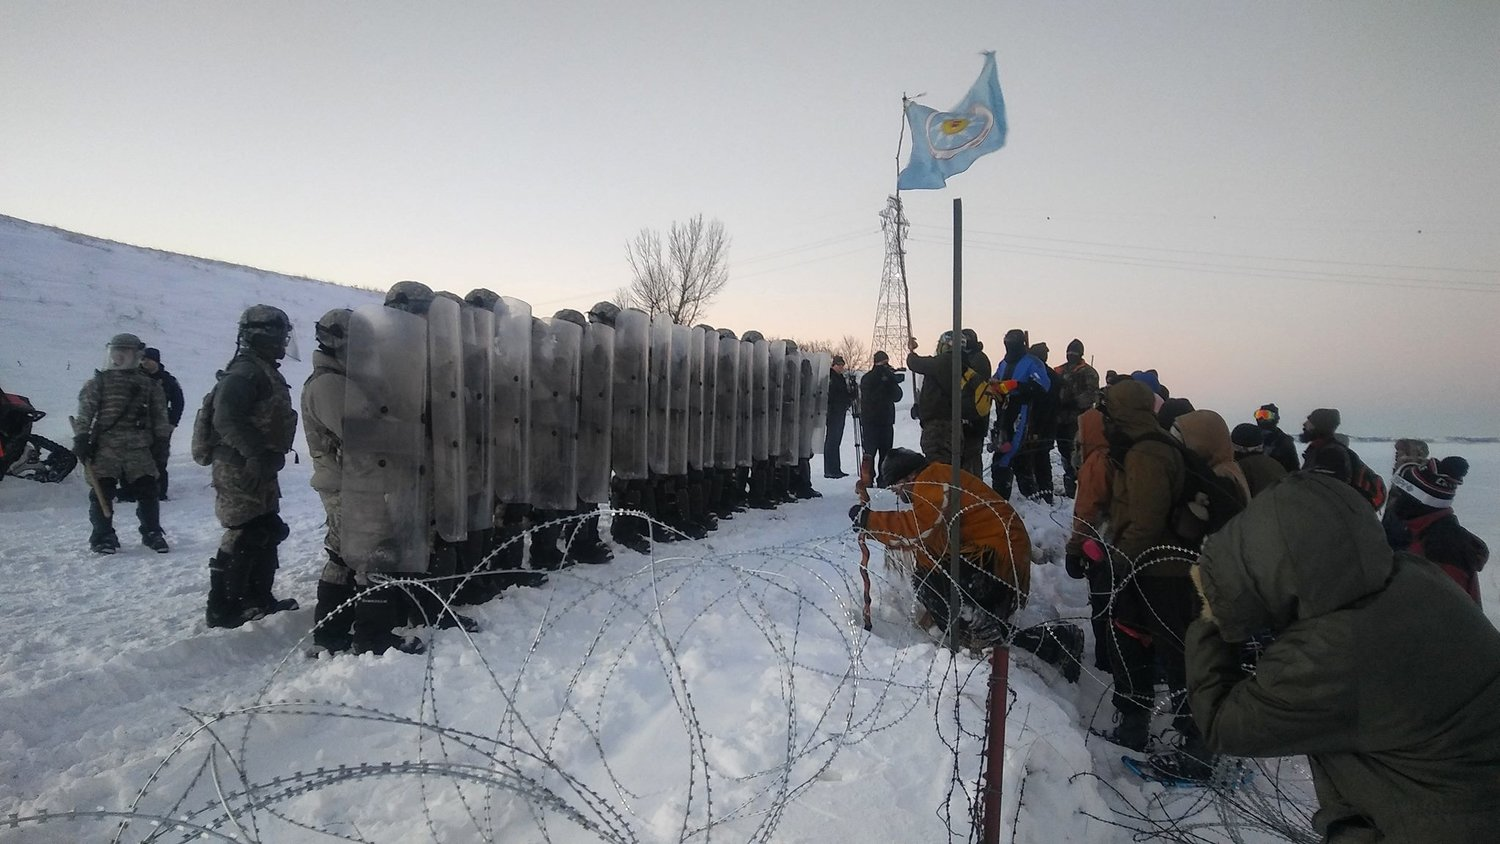 Department of the Army takes the lead on Dakota Access Pipeline